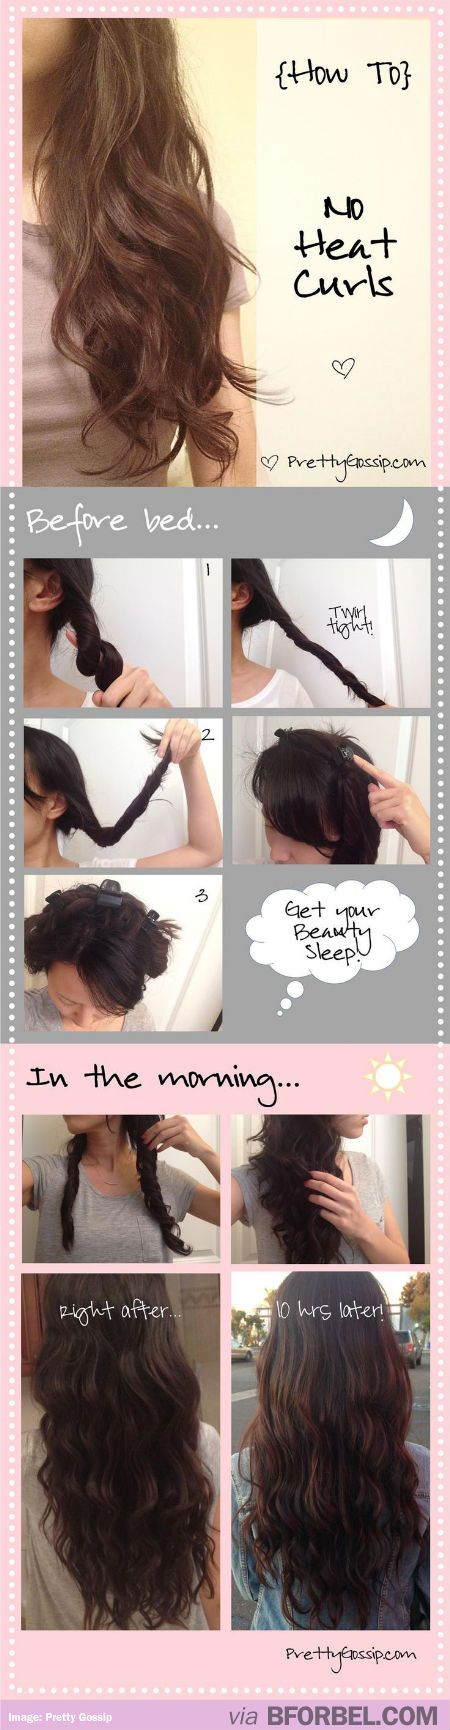 No Heat Curls You Do Before Bed So More Sleep Time Curly Hair Styles Pretty Hairstyles Hair Beauty